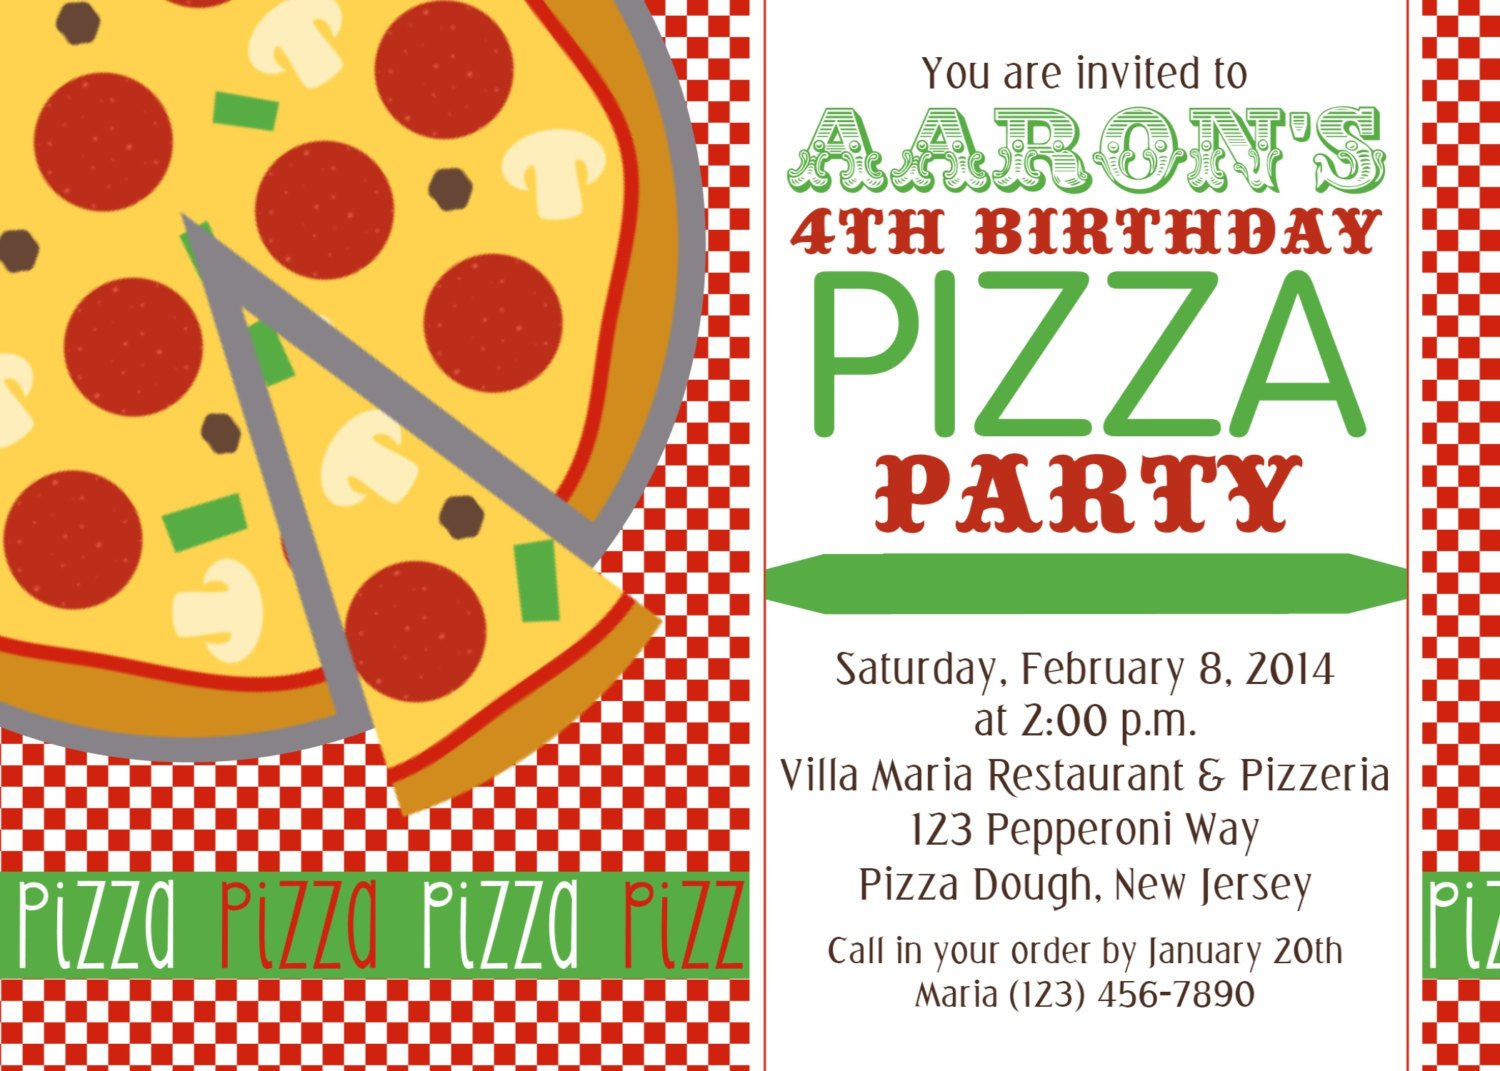 Pizza Party Invite Template Chandeliers & Pendant Lights